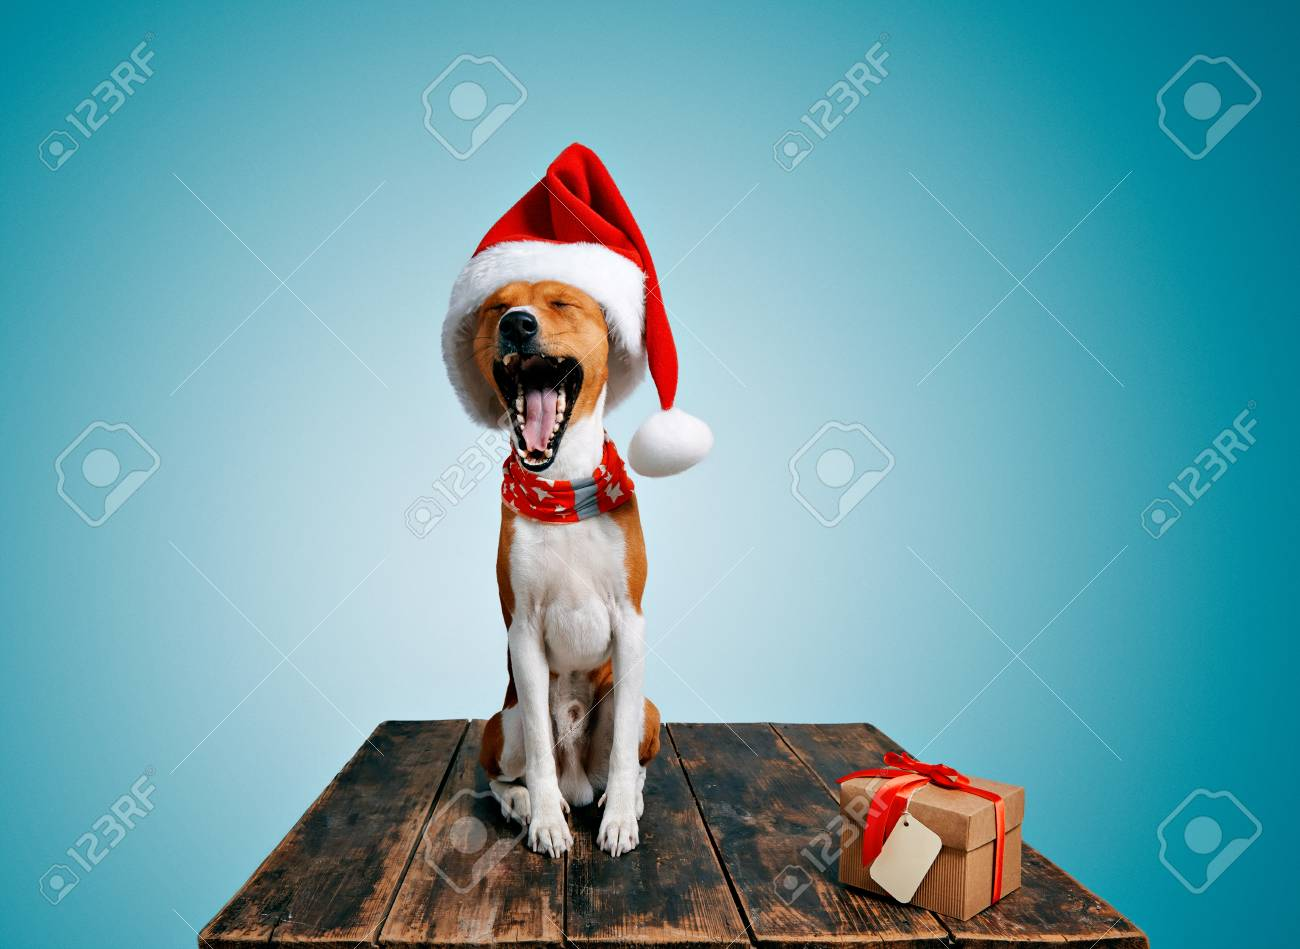 42c7ba58202 Funny beautiful basenji dog wearing christmas santa hat and yawning on  camera next to craft box with holiday gift tied with red tape and yellow  small ...